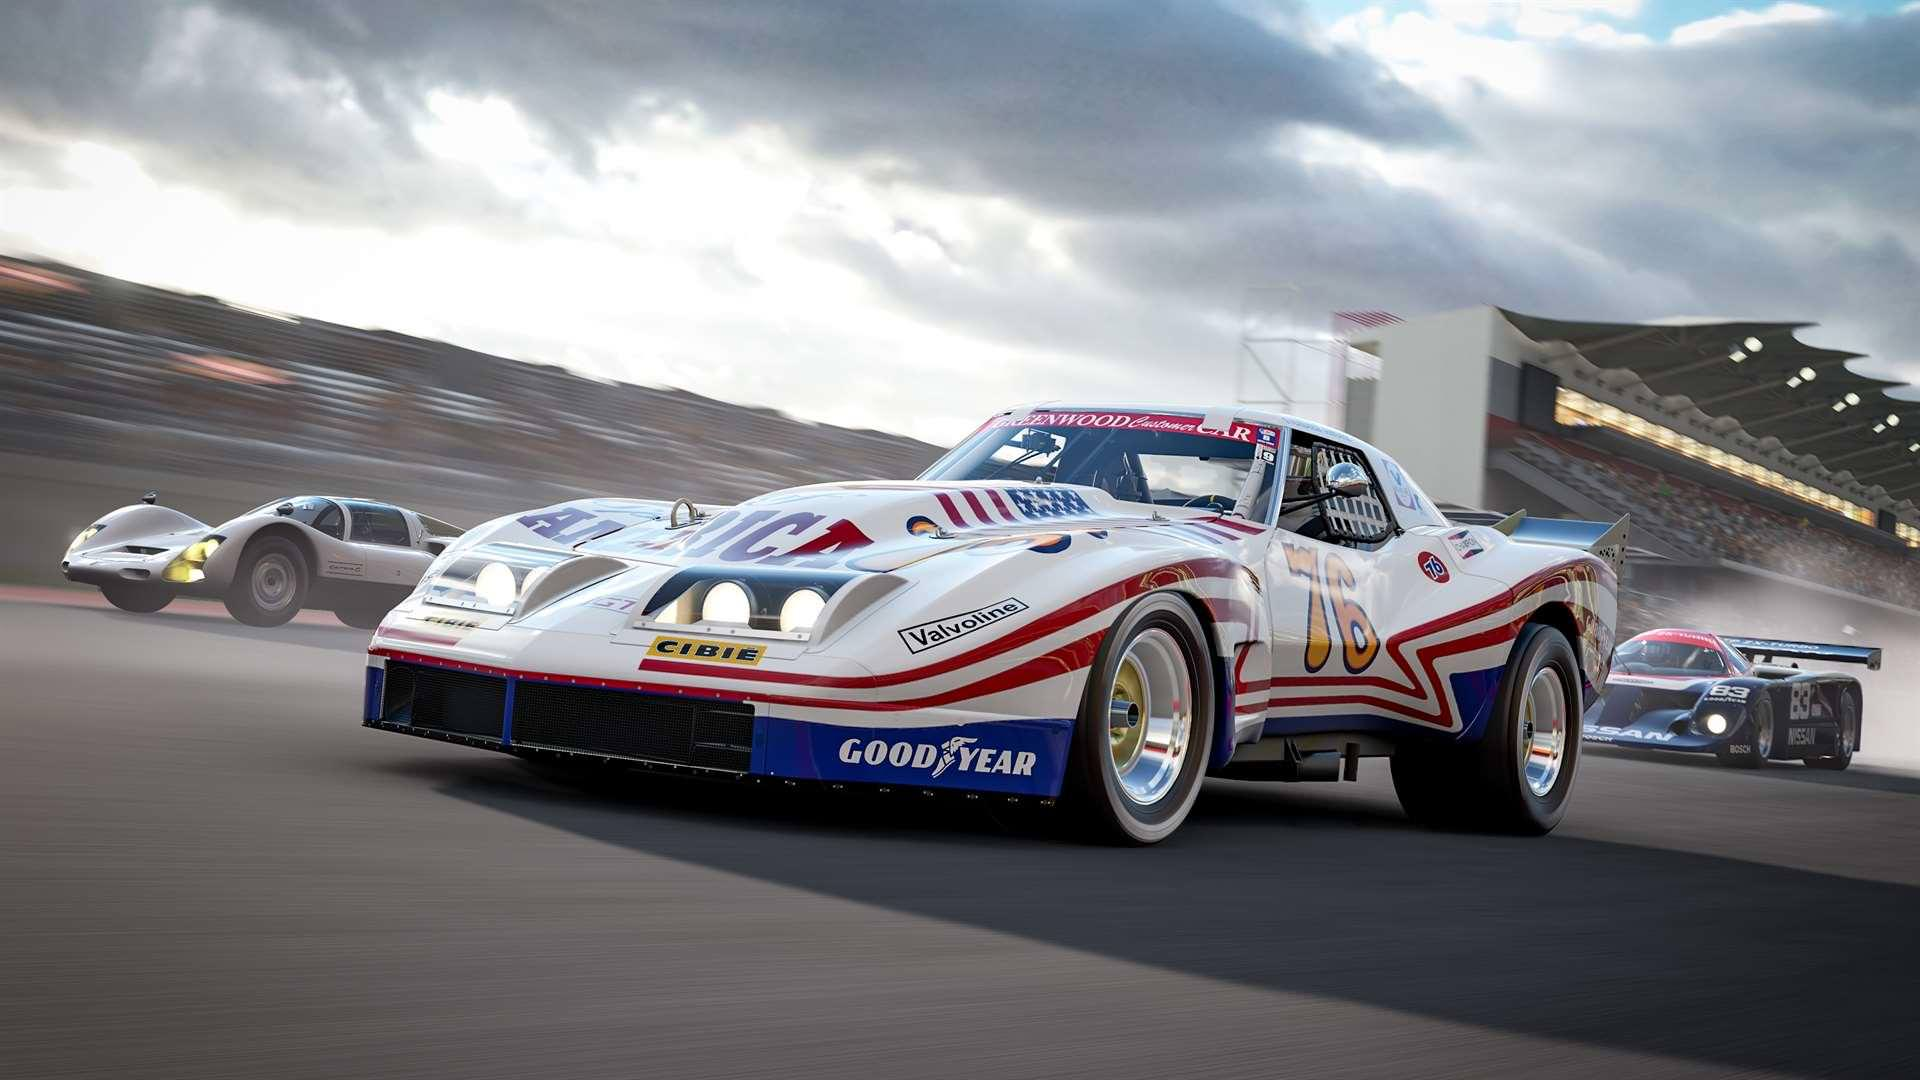 Forza Motorsport 7 K1 Speed Car Pack Adds 7 Unique Cars